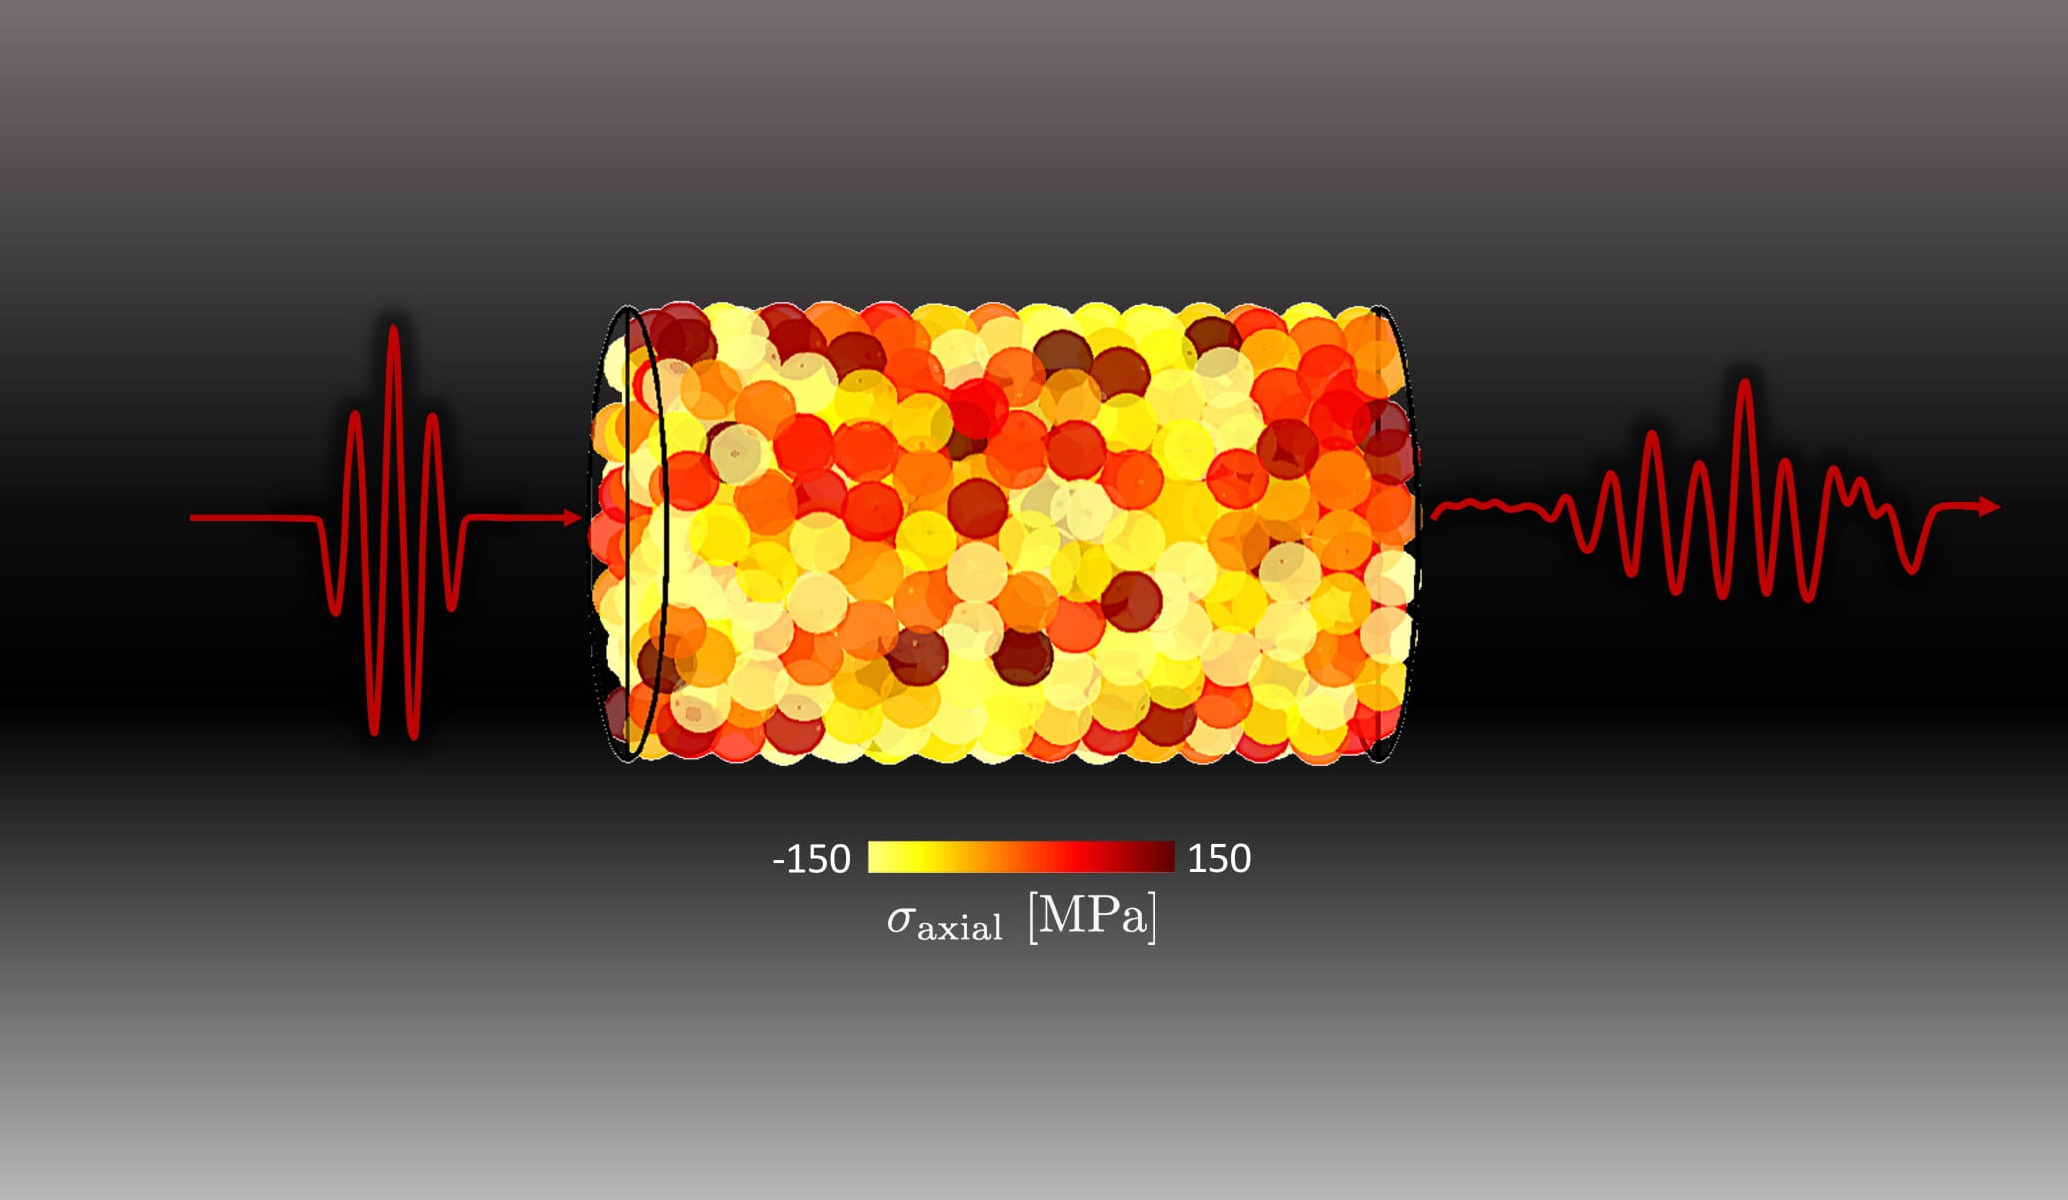 The image is a combination of two sets of data from X-ray scans of single crystal sapphire spheres.